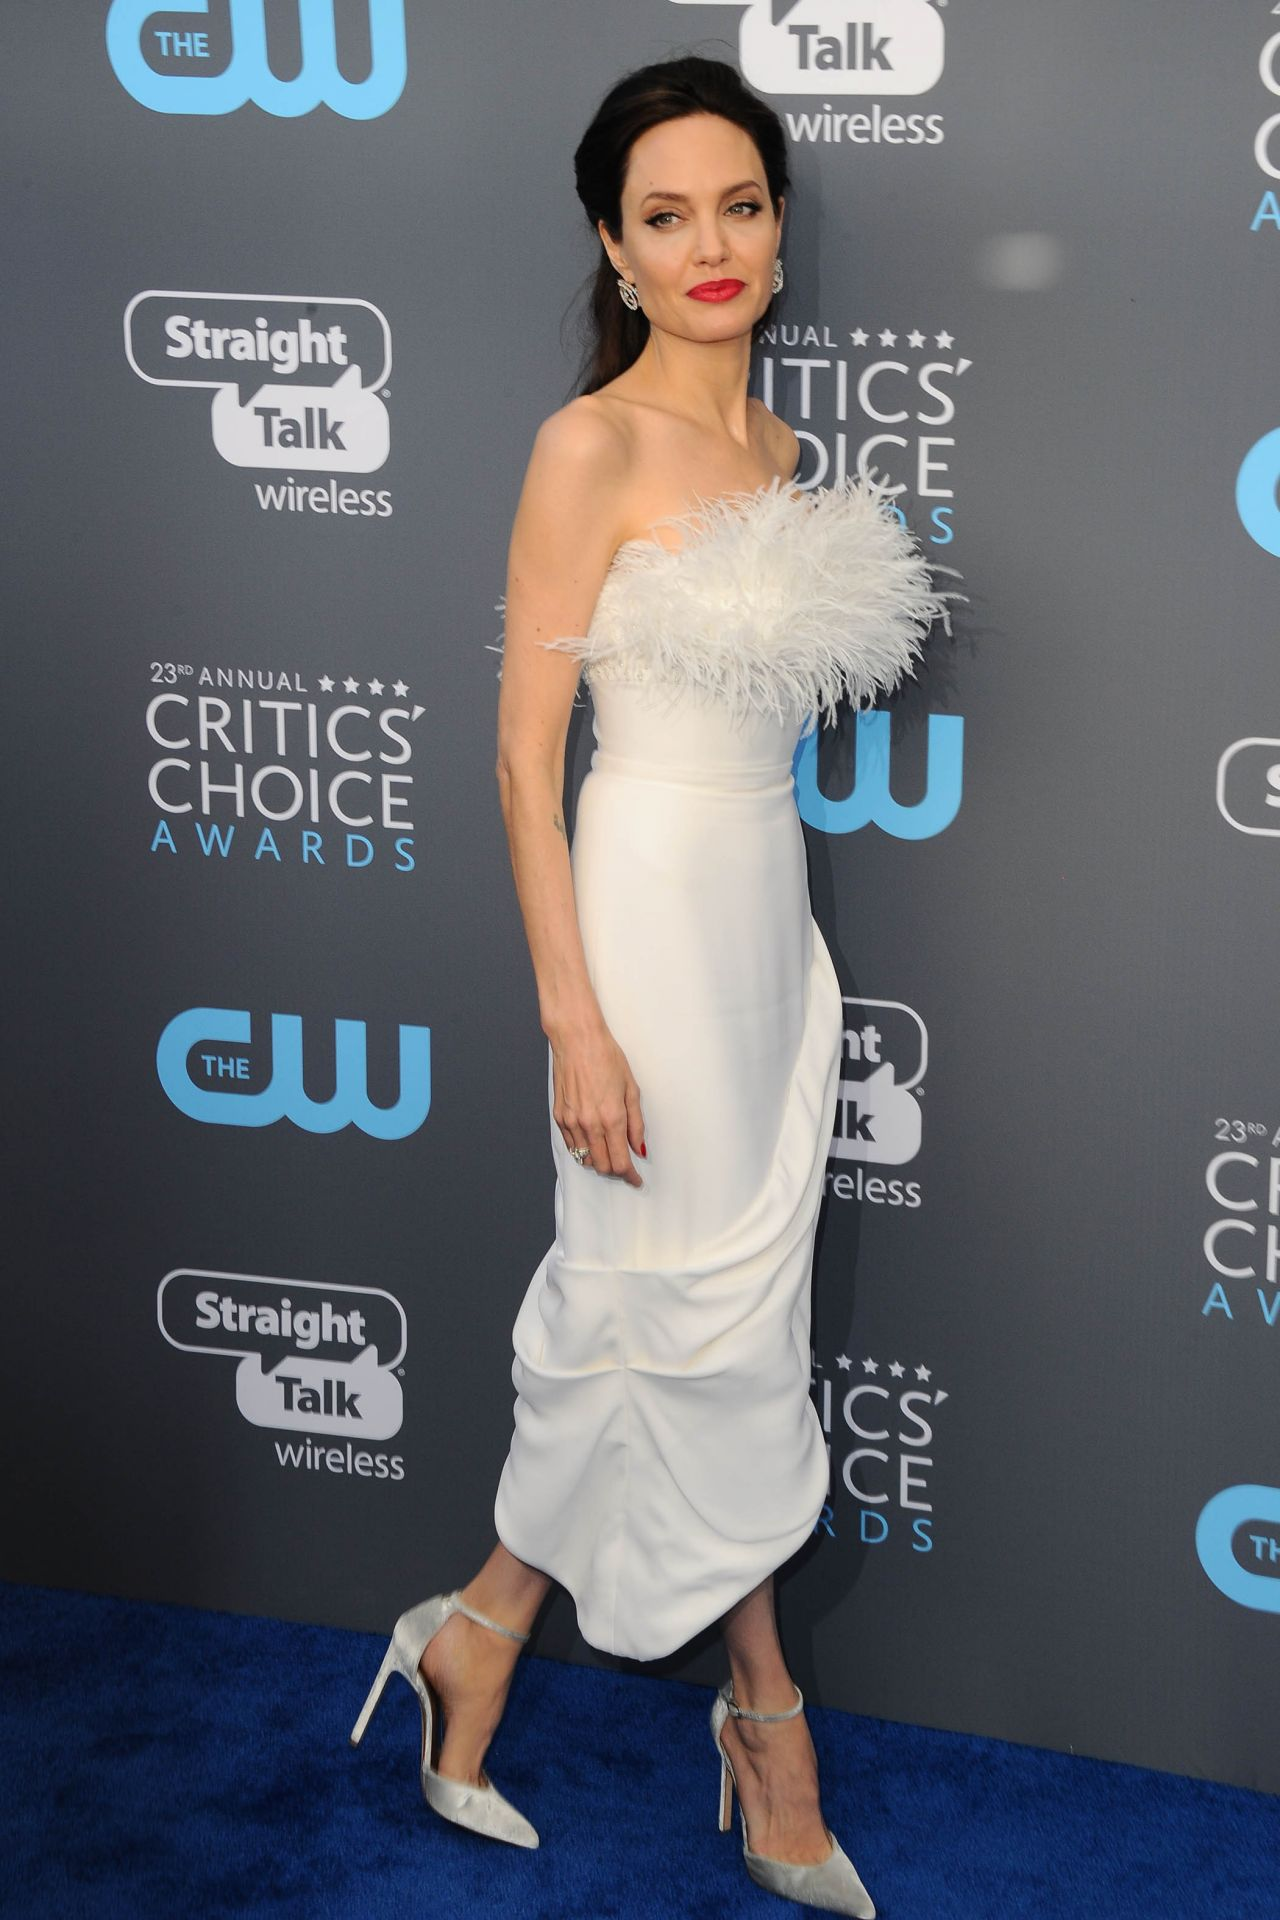 http://celebmafia.com/wp-content/uploads/2018/01/angelina-jolie-2018-critics-choice-awards-1.jpg